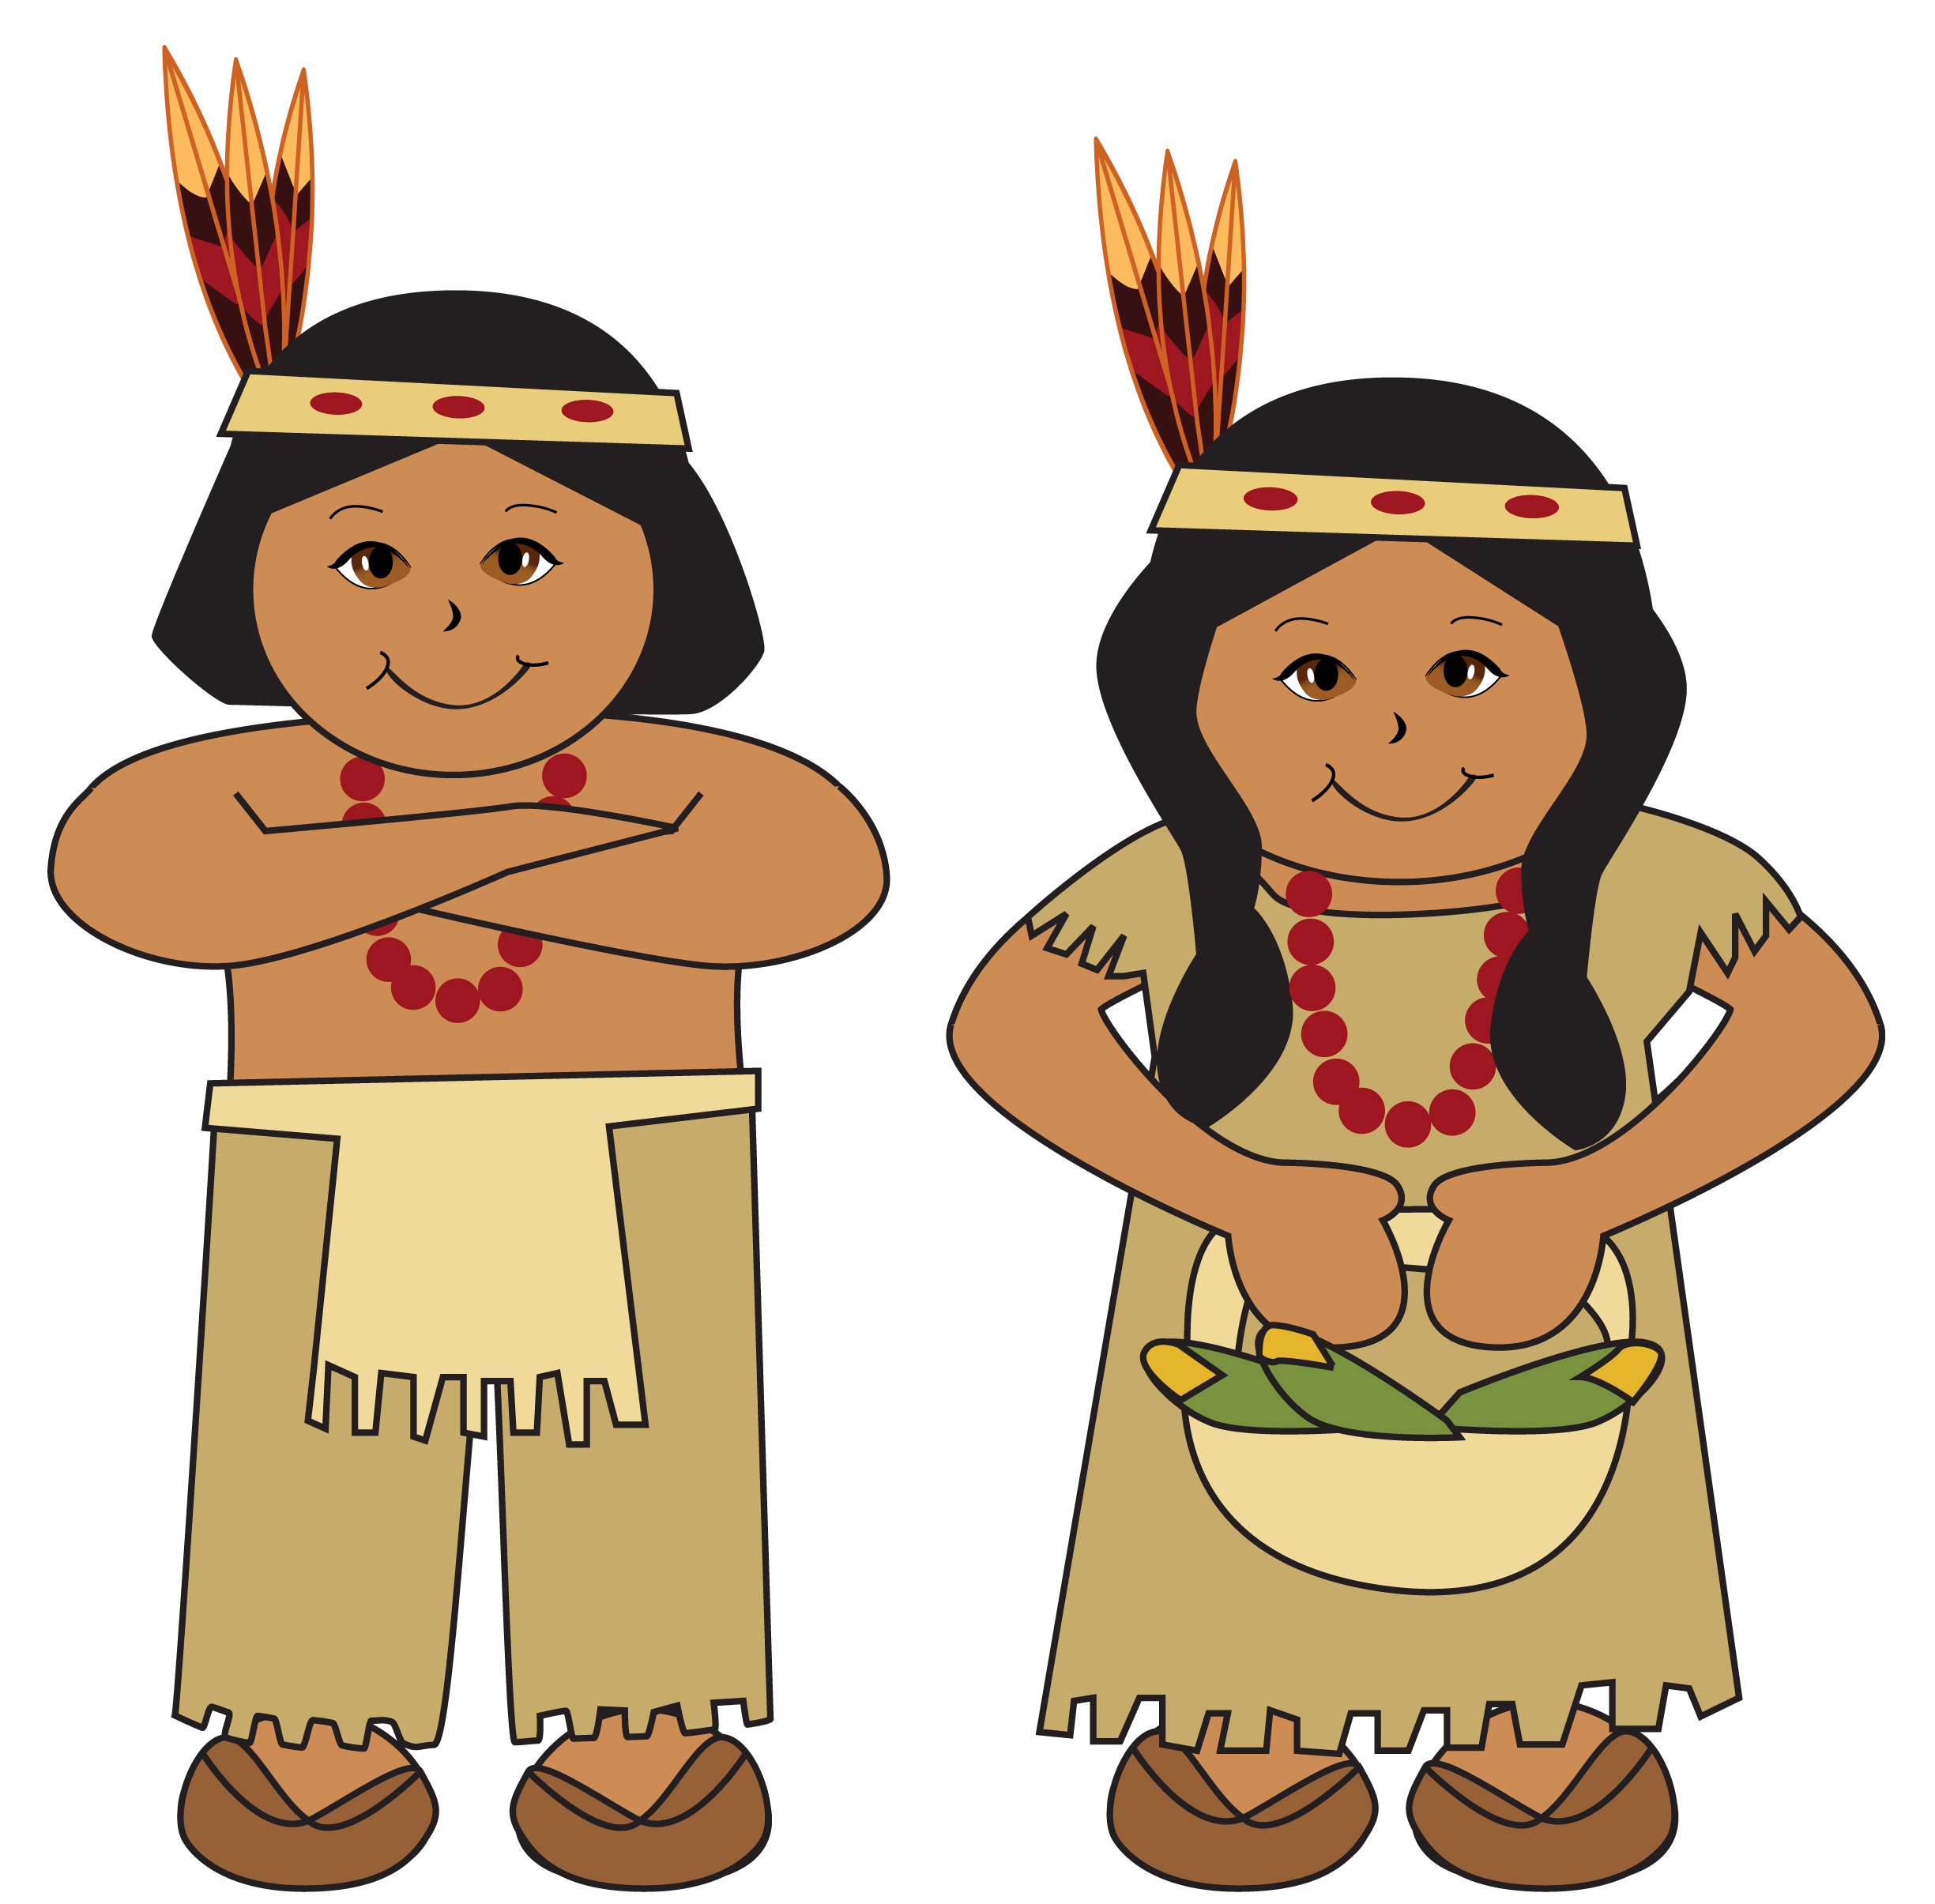 medium resolution of native americans clipart picture